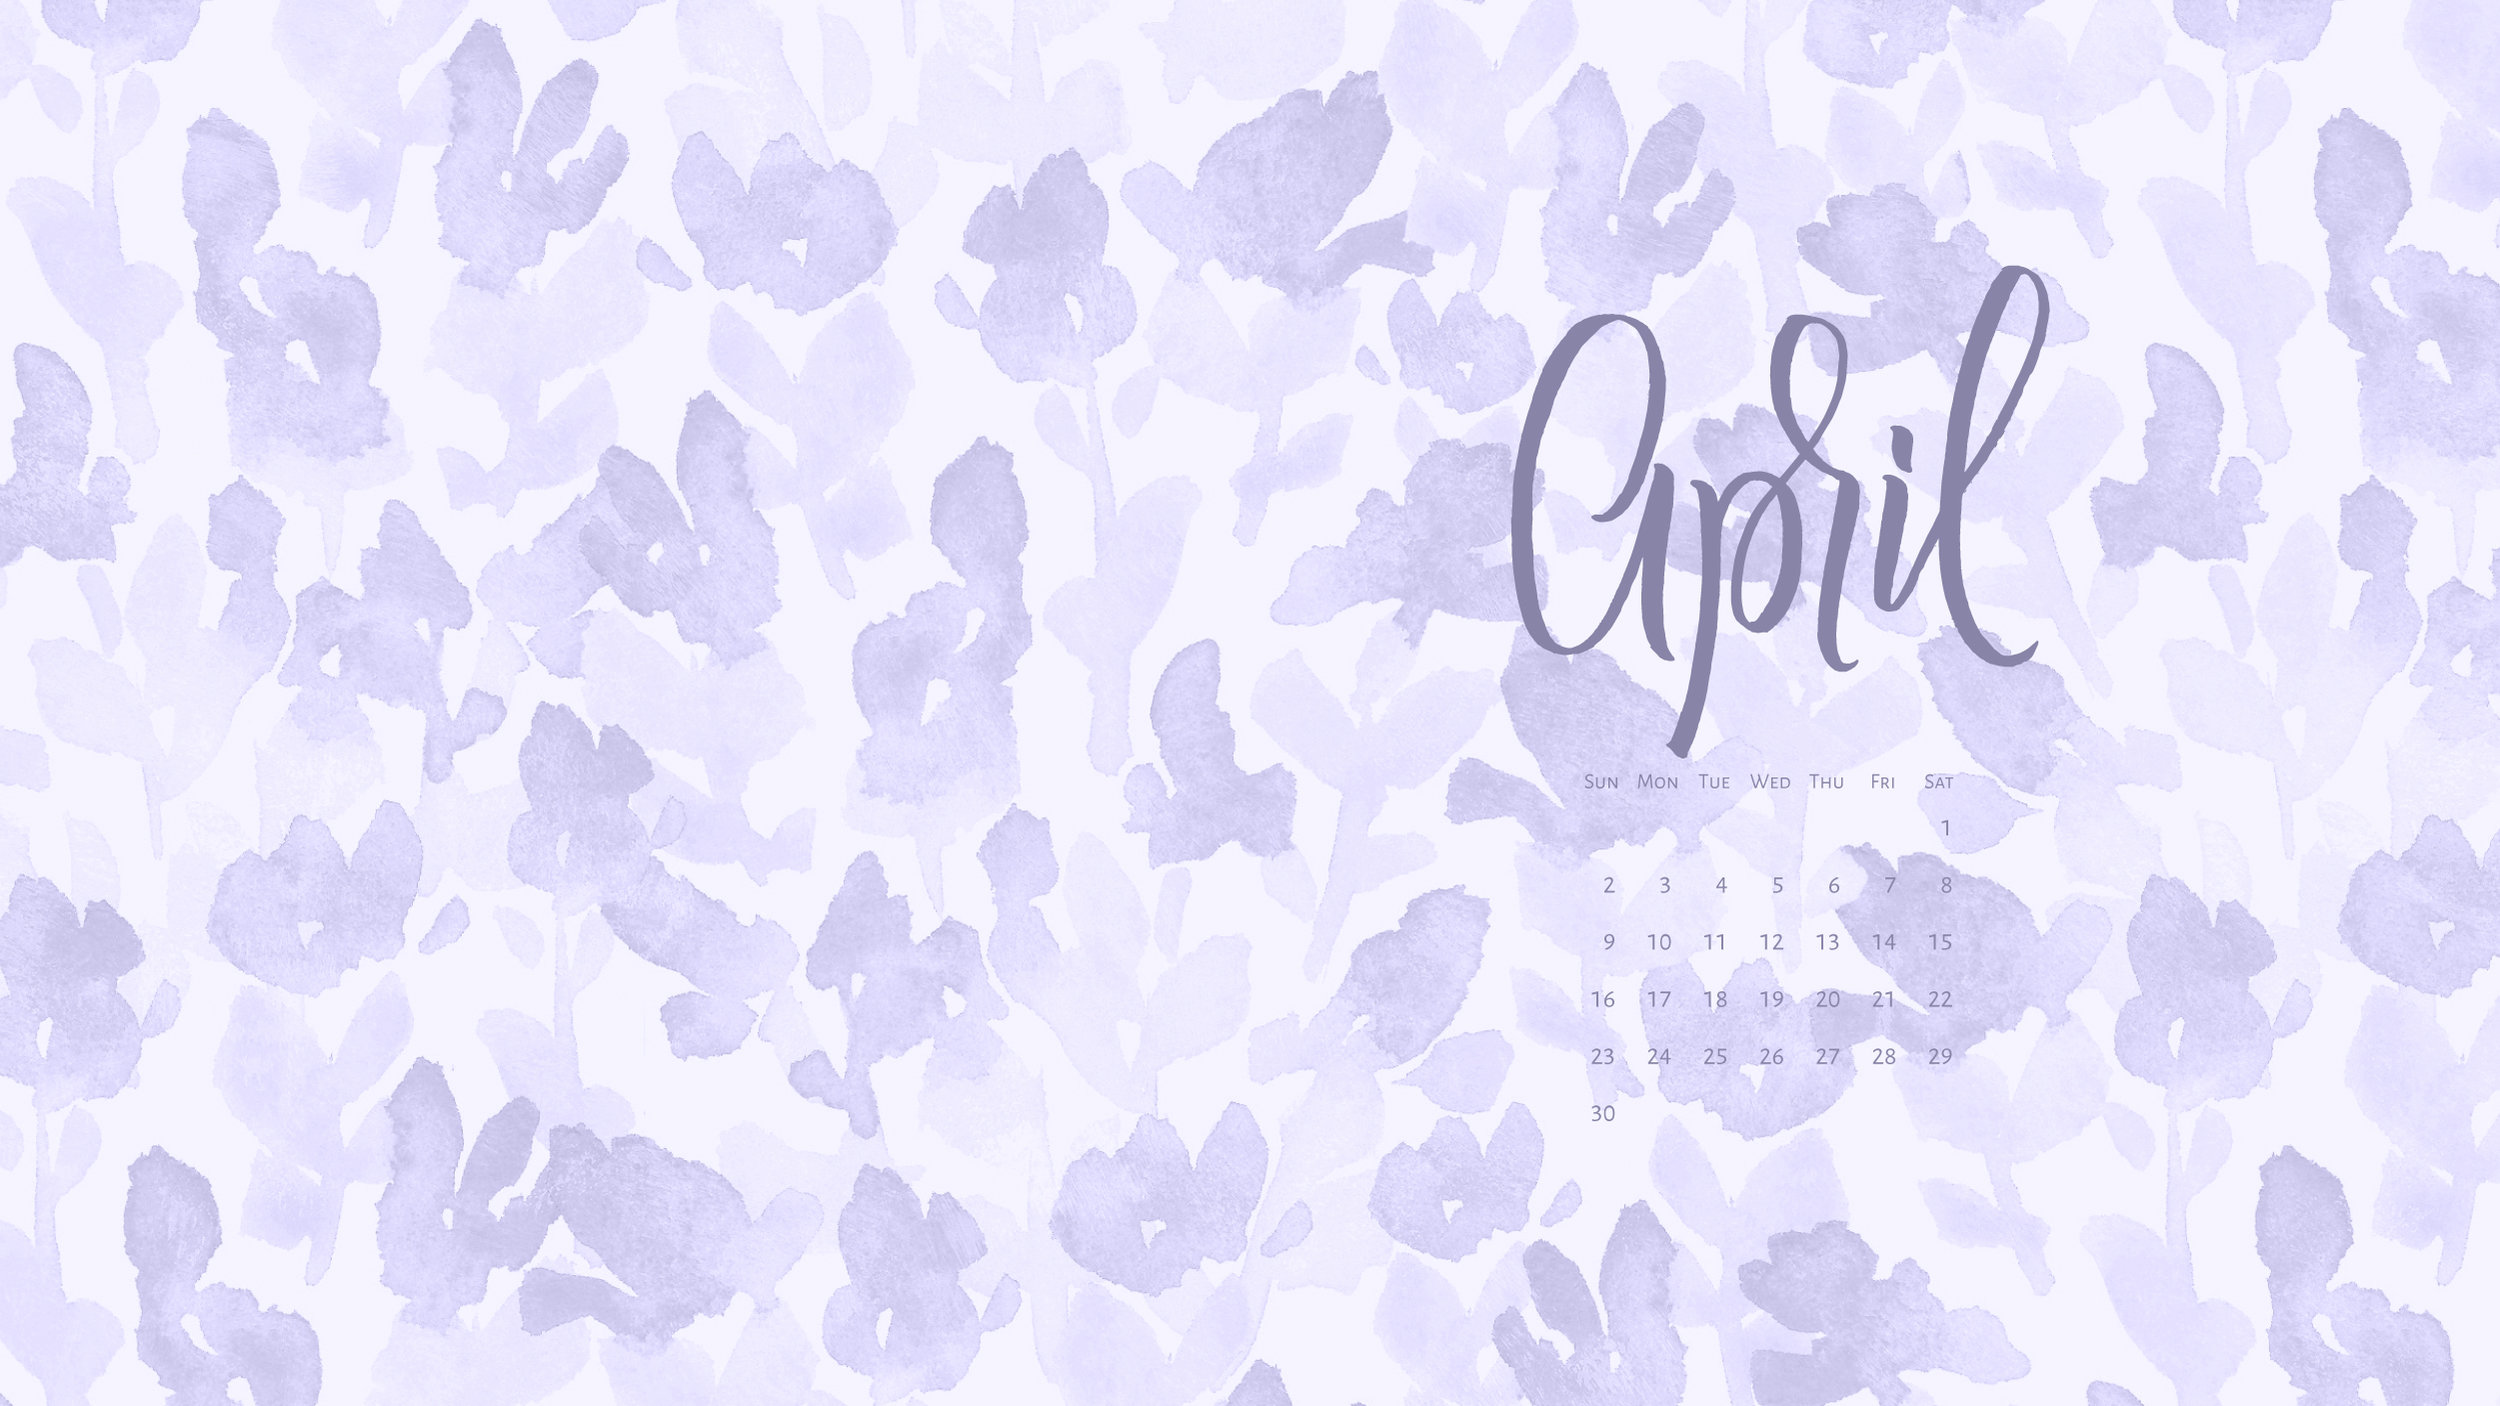 Download a free calendar for April 2017 |©typeandgraphicslab.com | For personal use only